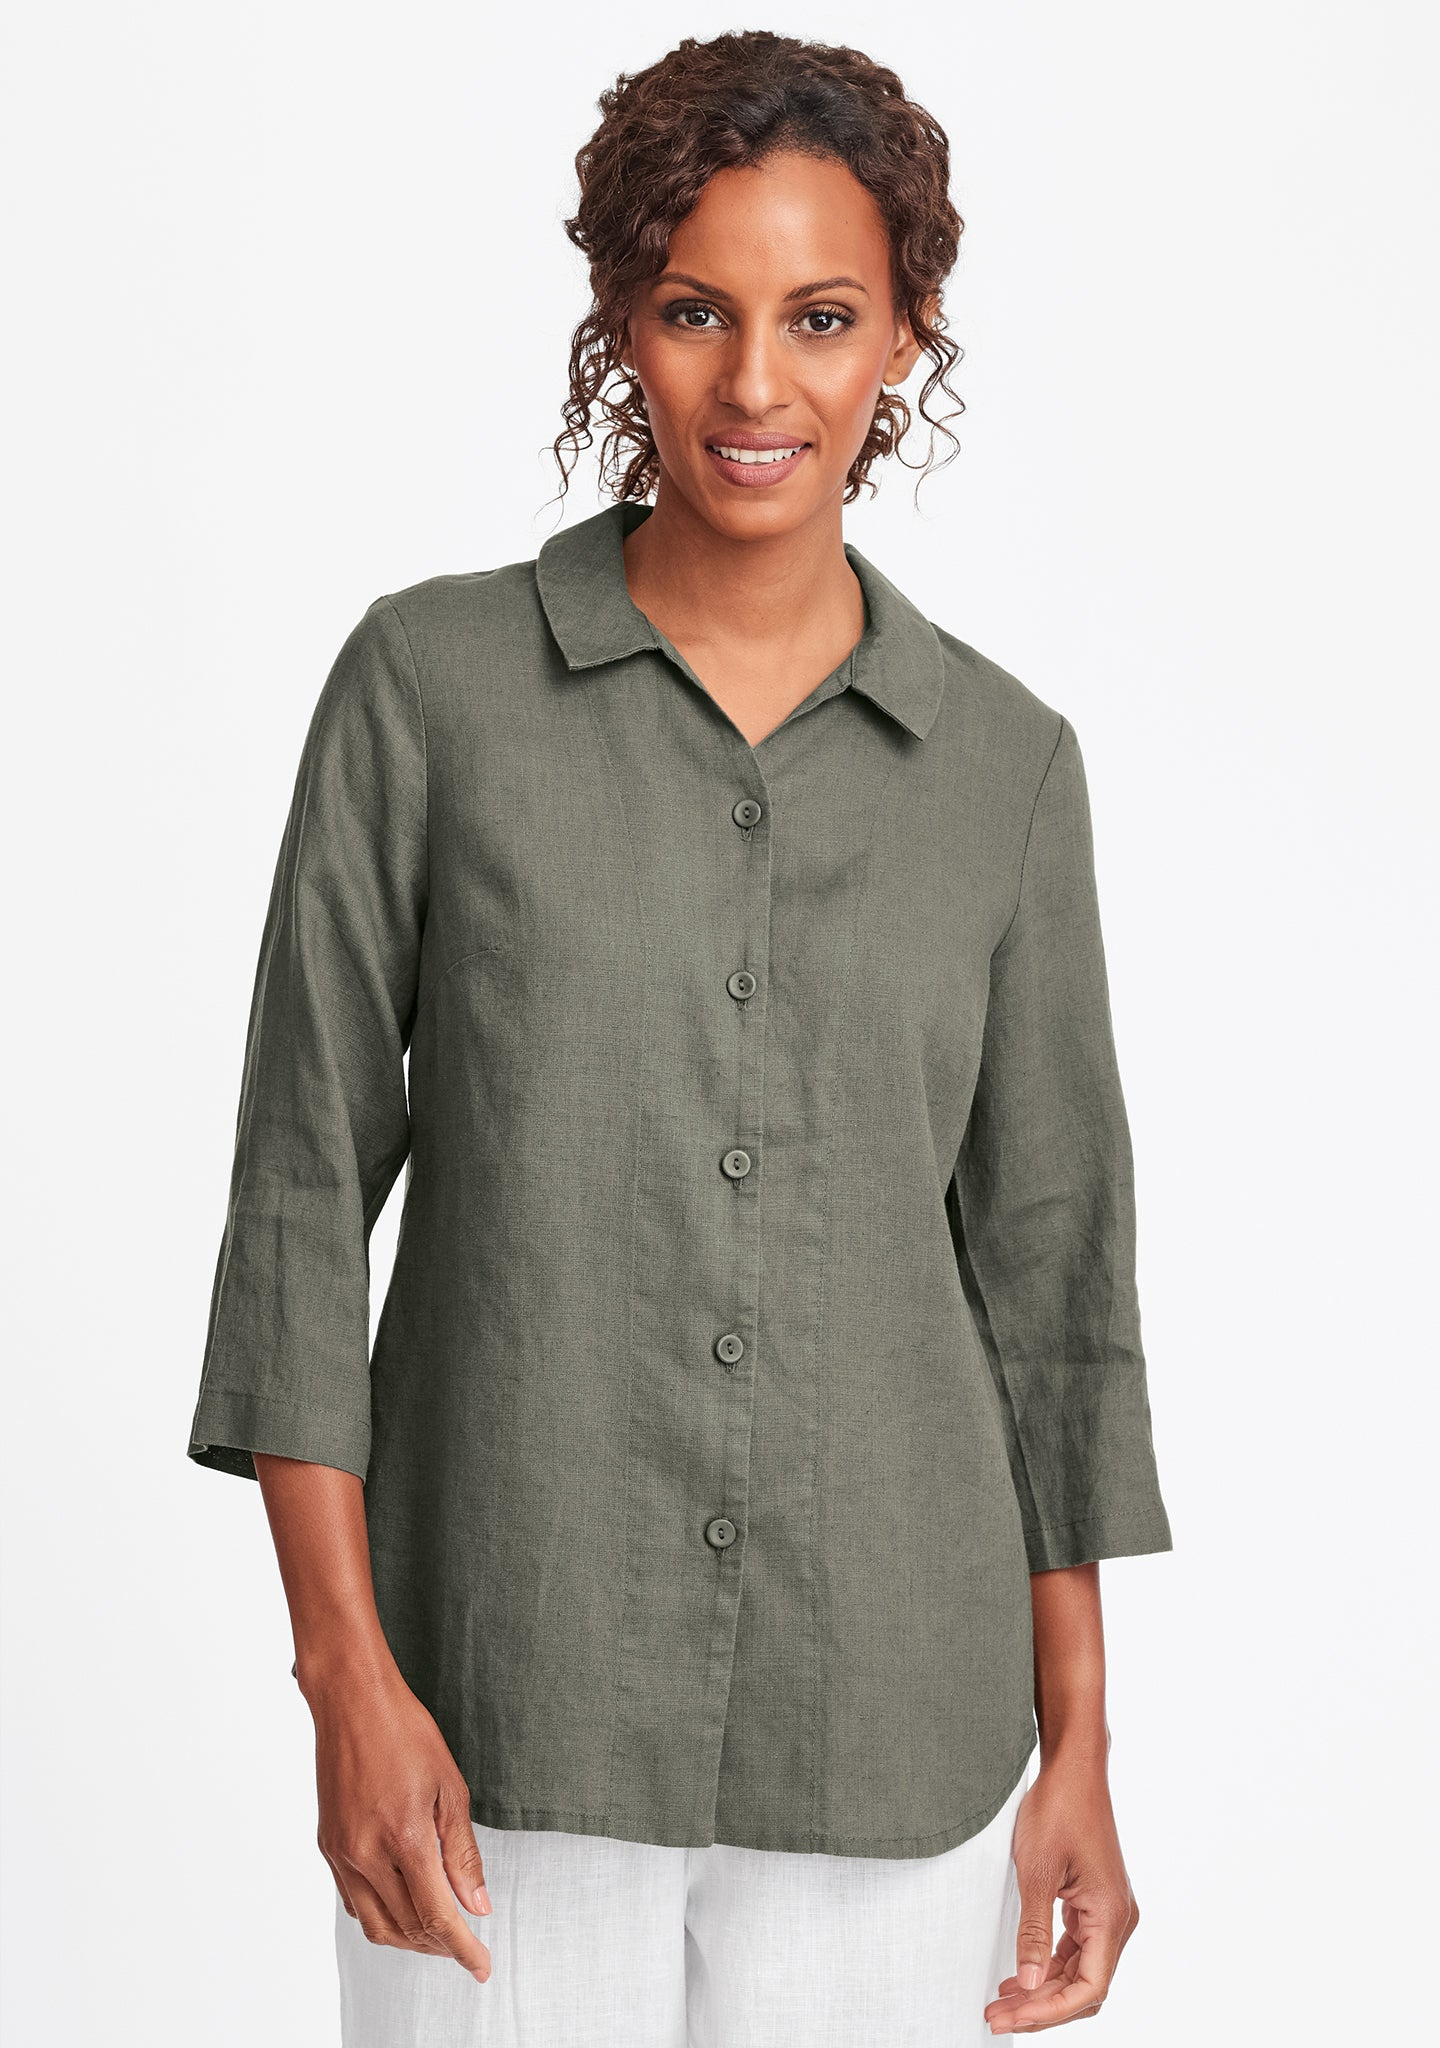 in-line blouse natural